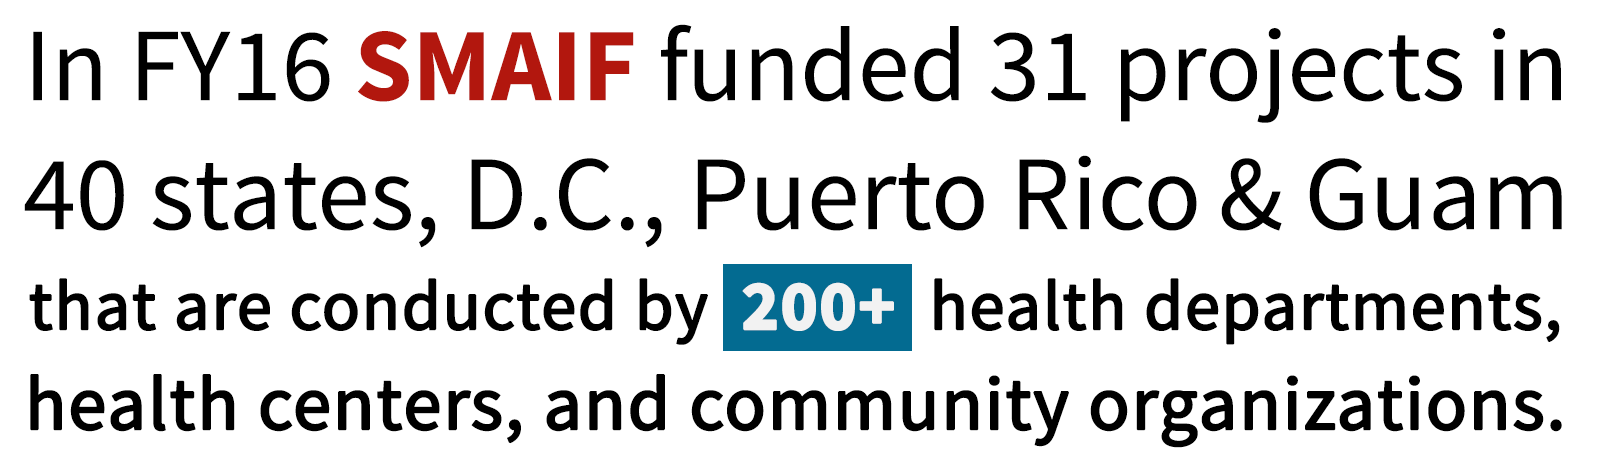 In FY16 SMAIF funded 31 projects in 40 states, D.C., Puerto Rico, and Guam that are conducted by 200+ health departments, health centers, and community organizations.